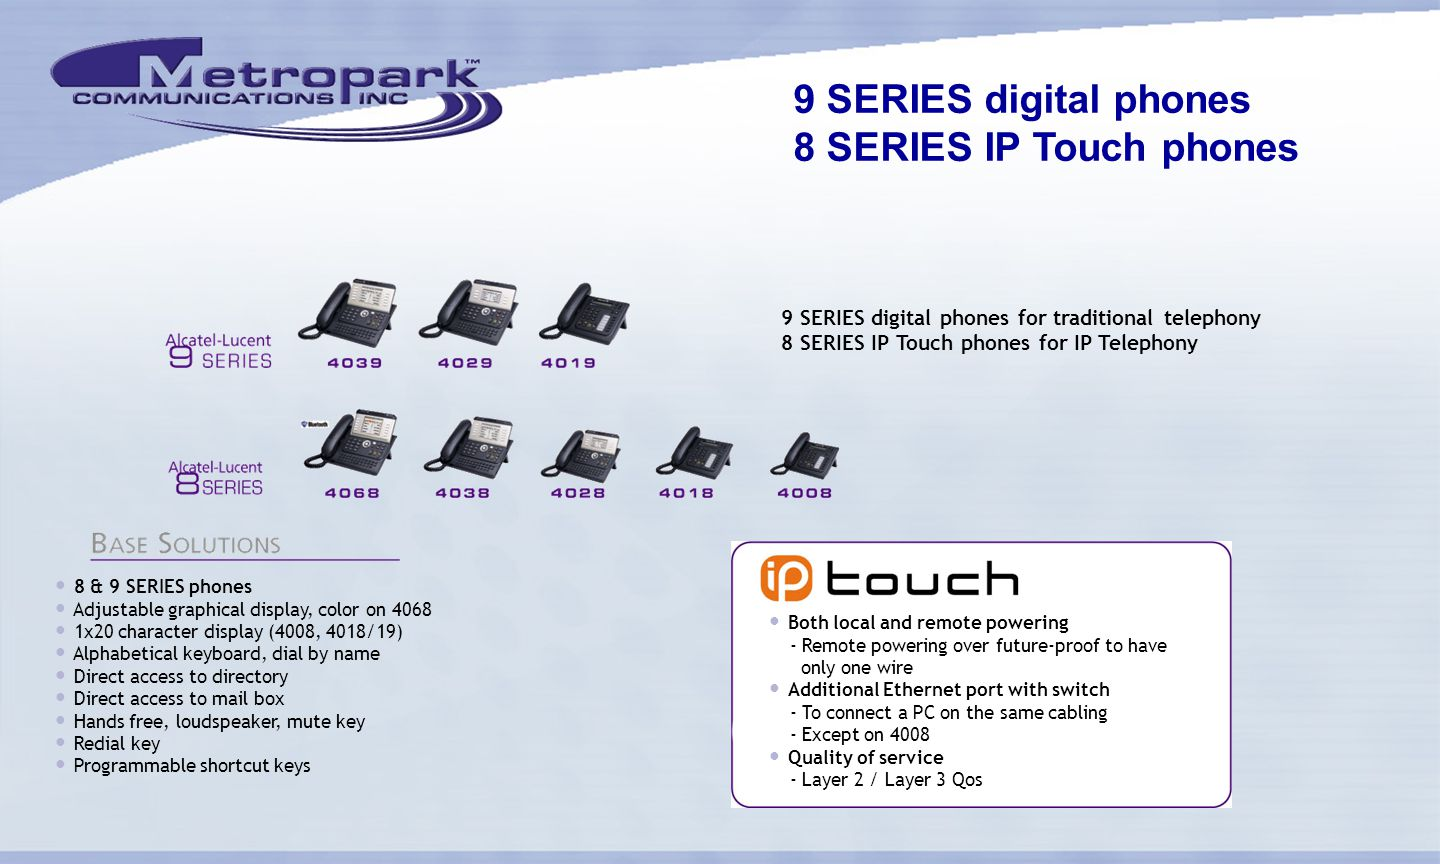 9 SERIES digital phones 8 SERIES IP Touch phones 9 SERIES digital phones for traditional telephony 8 SERIES IP Touch phones for IP Telephony 8 & 9 SERIES phones Adjustable graphical display, color on 4068 1x20 character display (4008, 4018/19) Alphabetical keyboard, dial by name Direct access to directory Direct access to mail box Hands free, loudspeaker, mute key Redial key Programmable shortcut keys Both local and remote powering - Remote powering over future-proof to have only one wire Additional Ethernet port with switch - To connect a PC on the same cabling - Except on 4008 Quality of service - Layer 2 / Layer 3 Qos